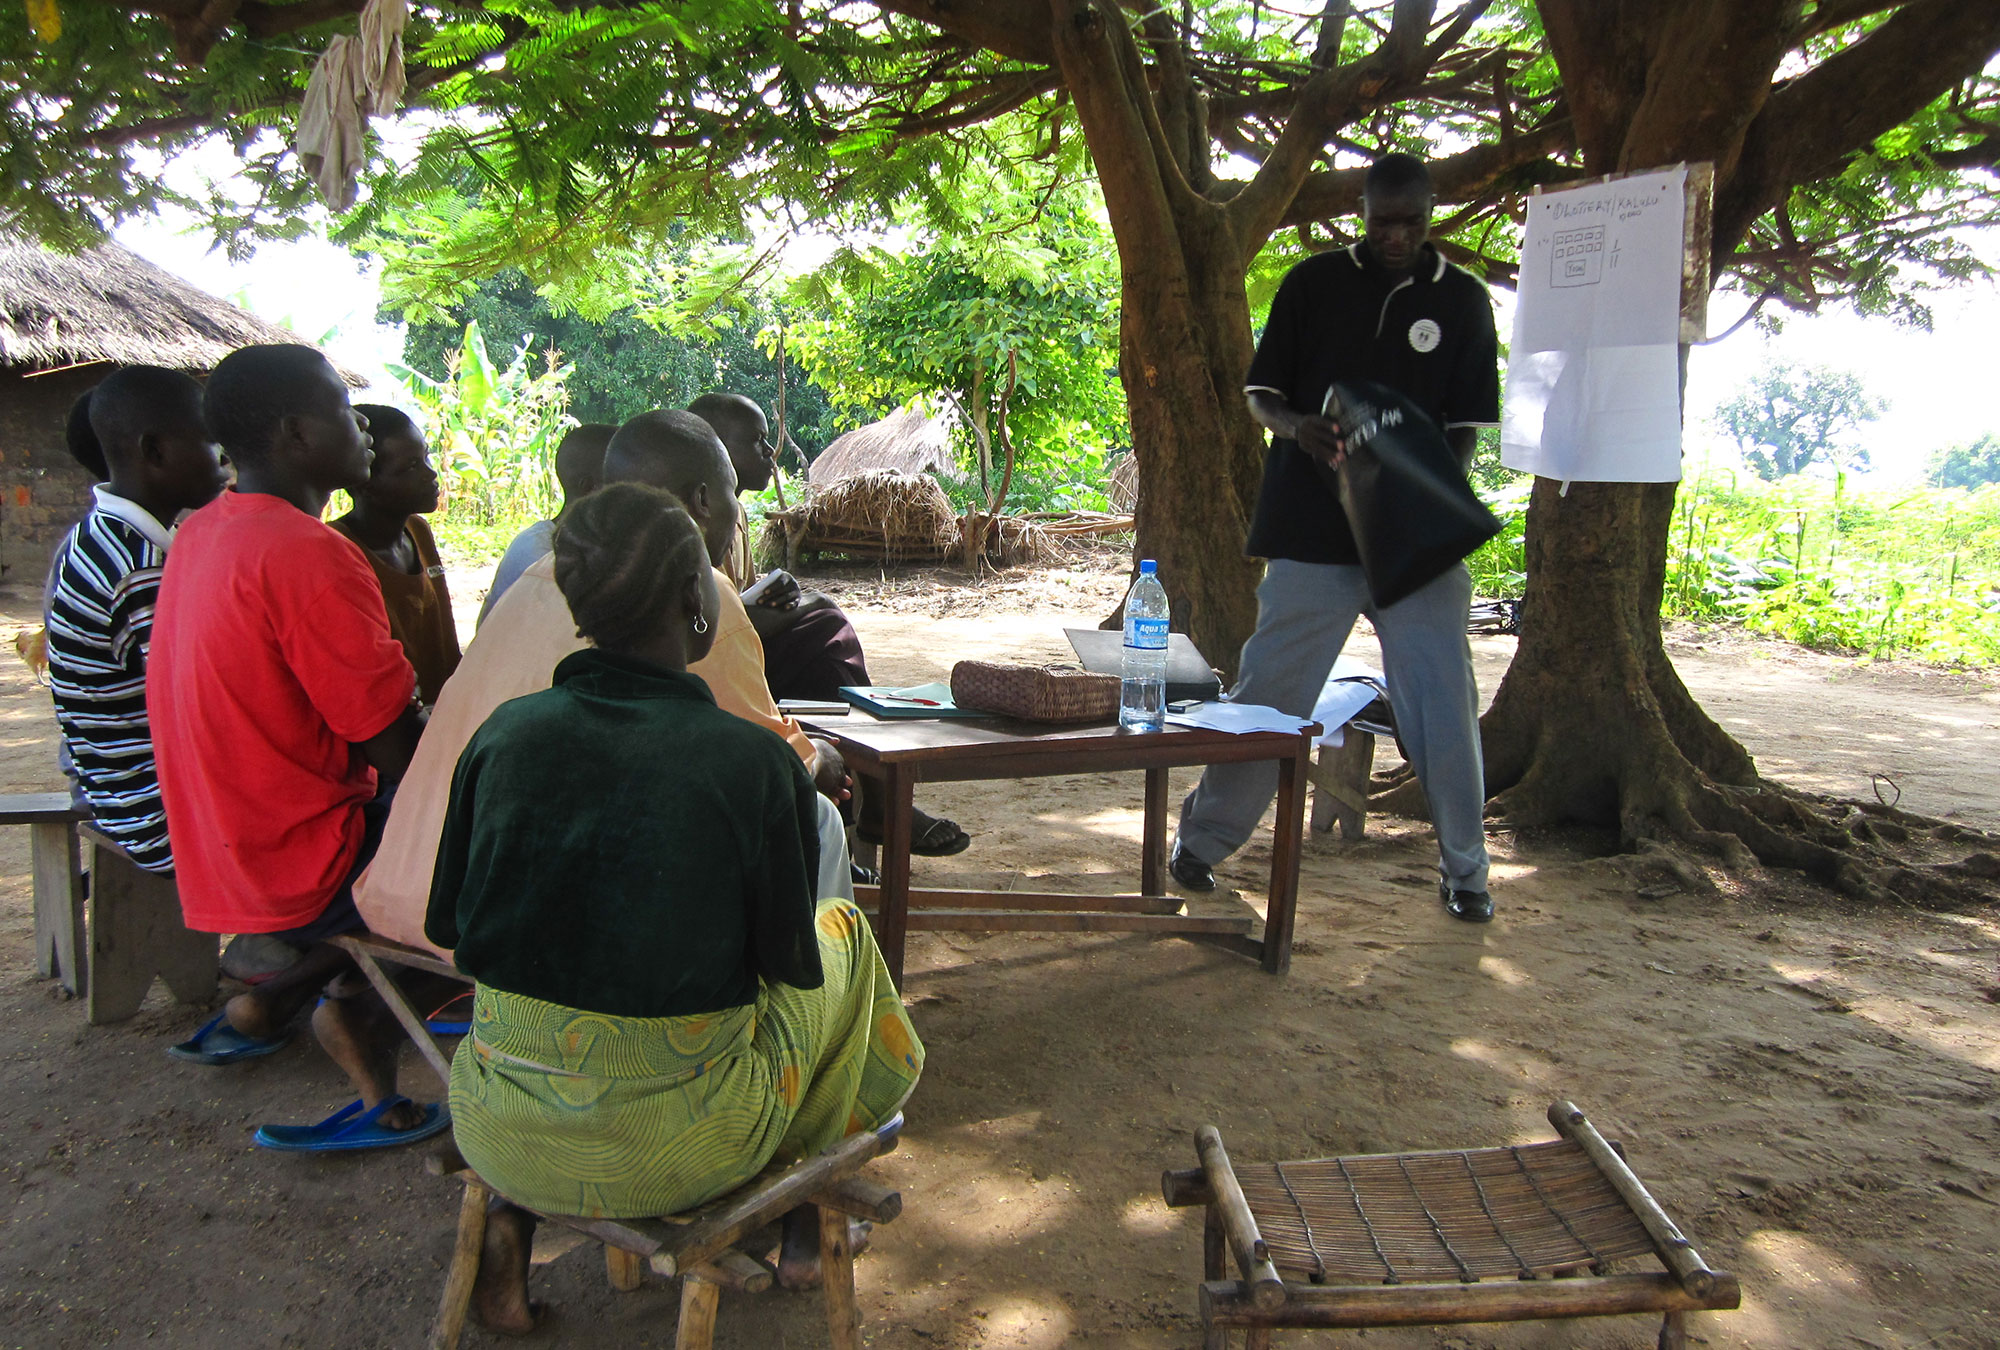 Group of Ugandan youth watch man giving presentation under a tree